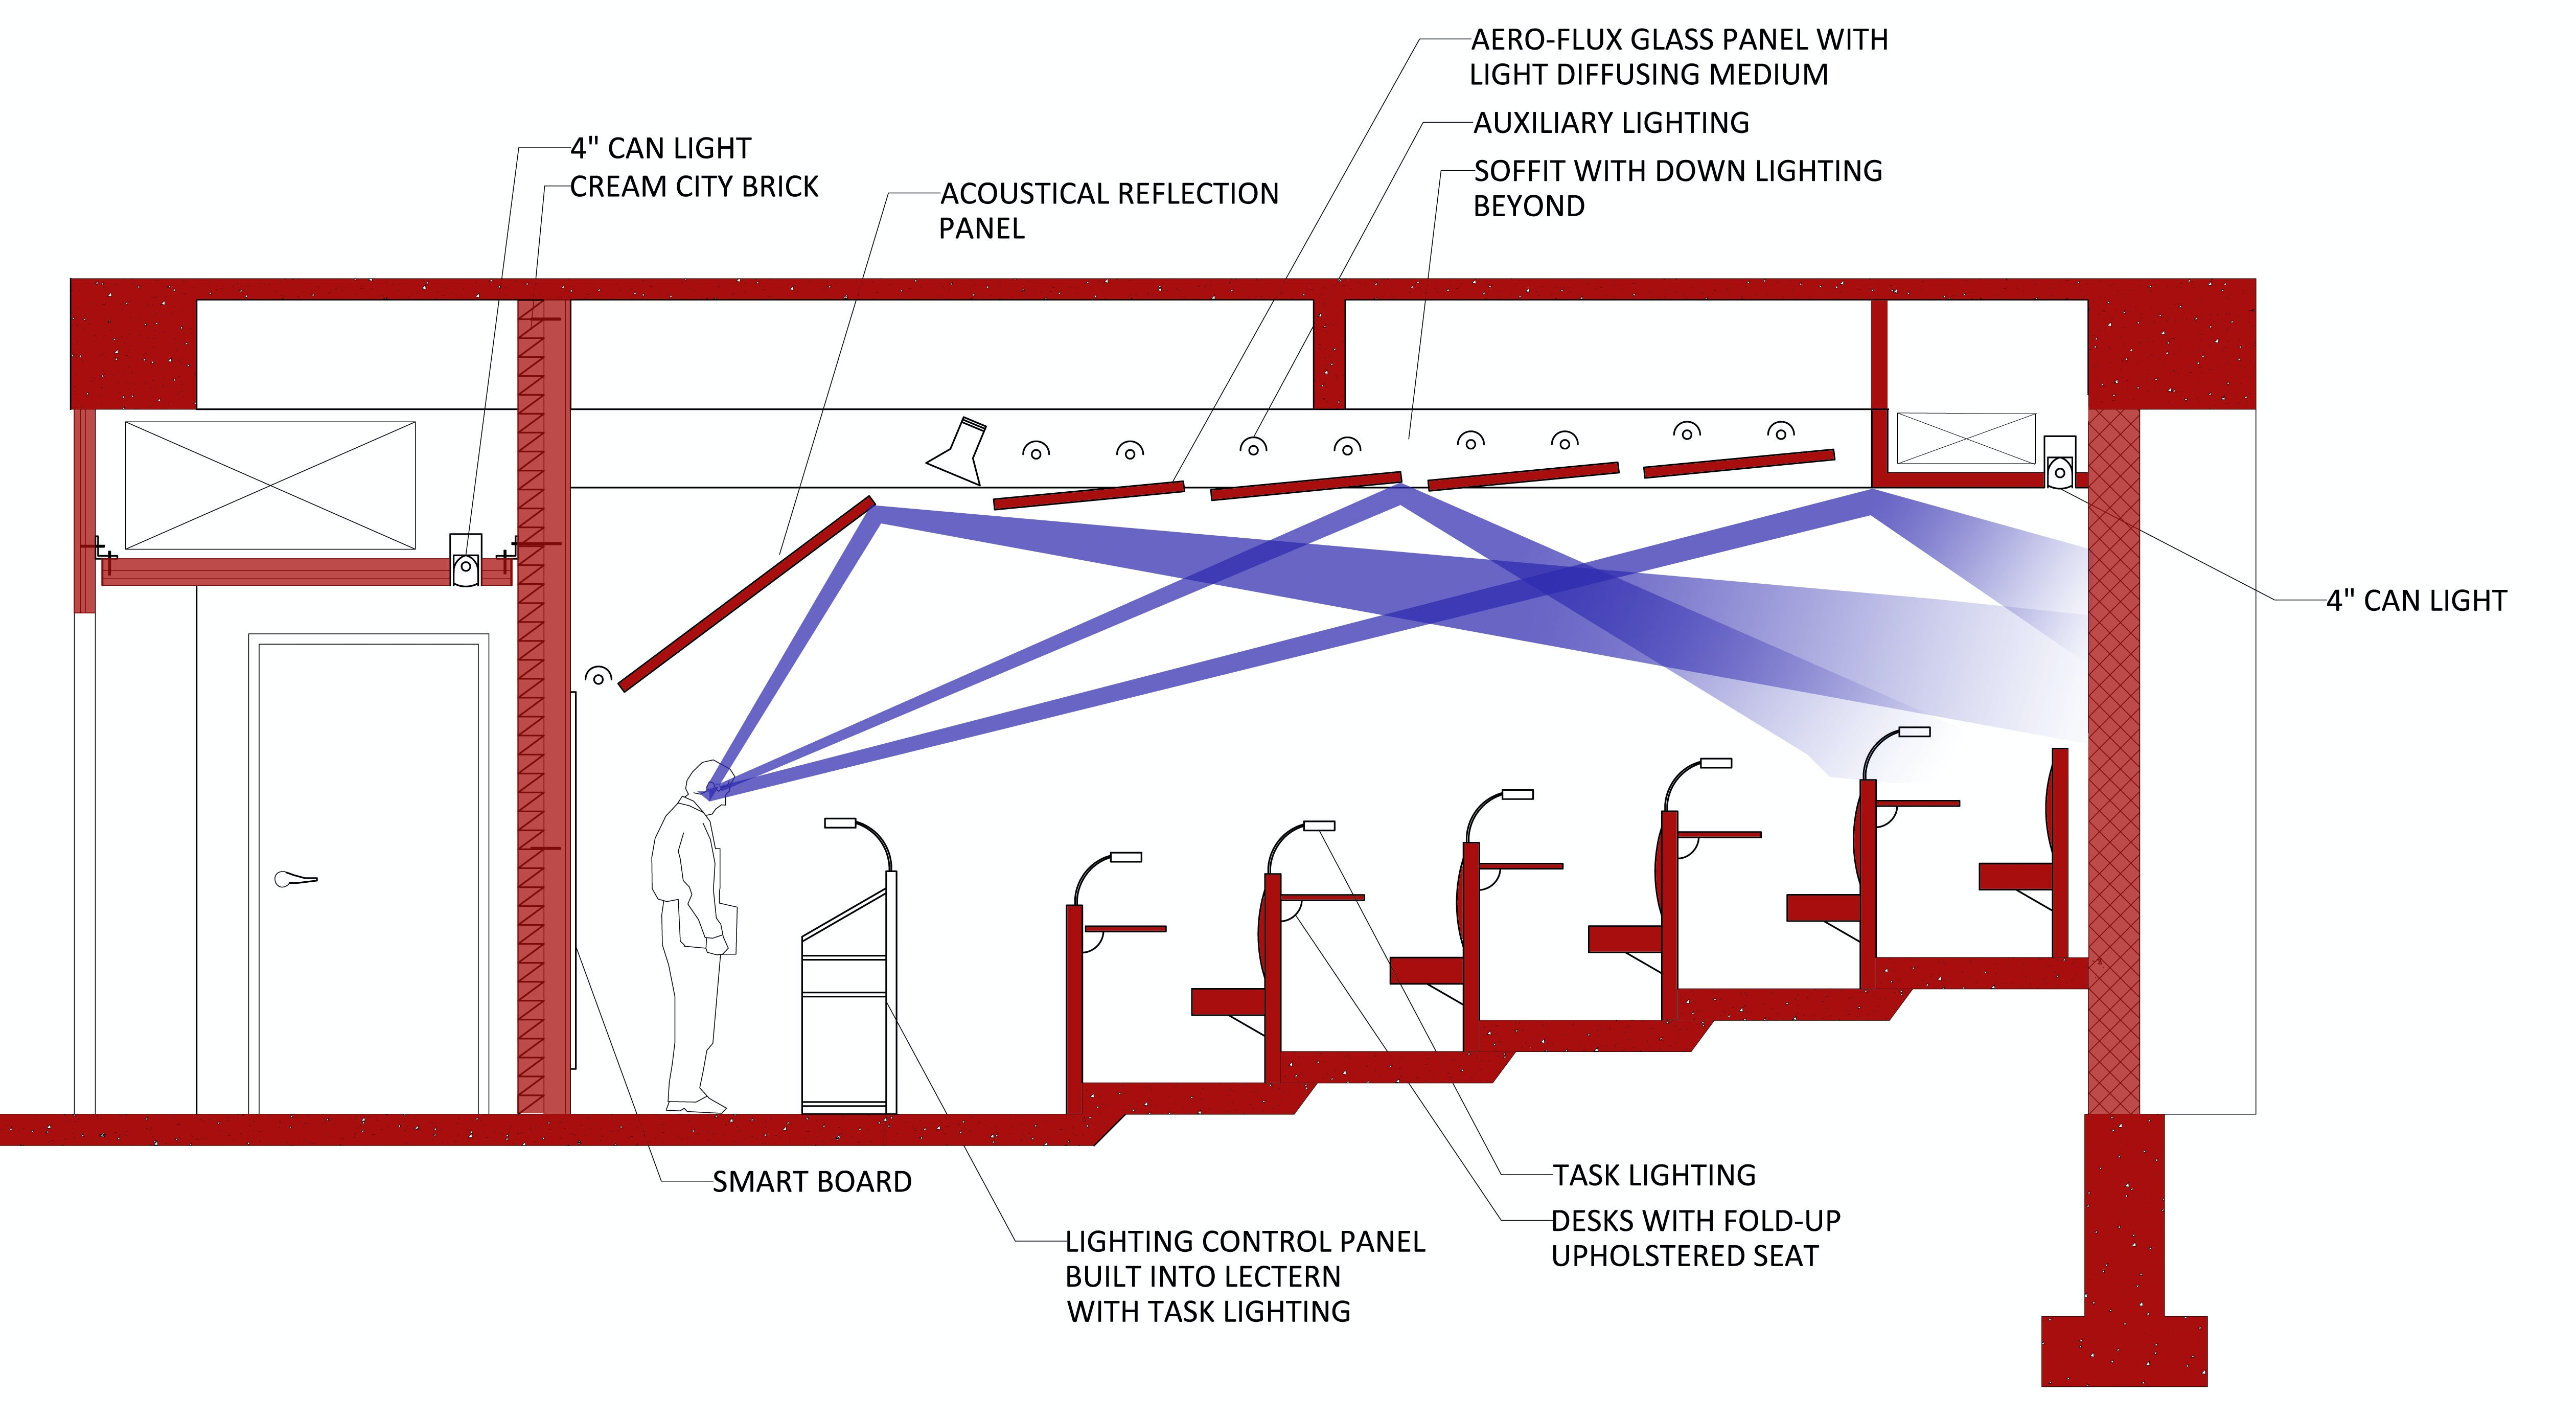 ollswang lecture hall lighting and acoustics ashley rybarczyk rh archinect com Portrait Lighting Setup Diagram Light Switch Wiring Diagram